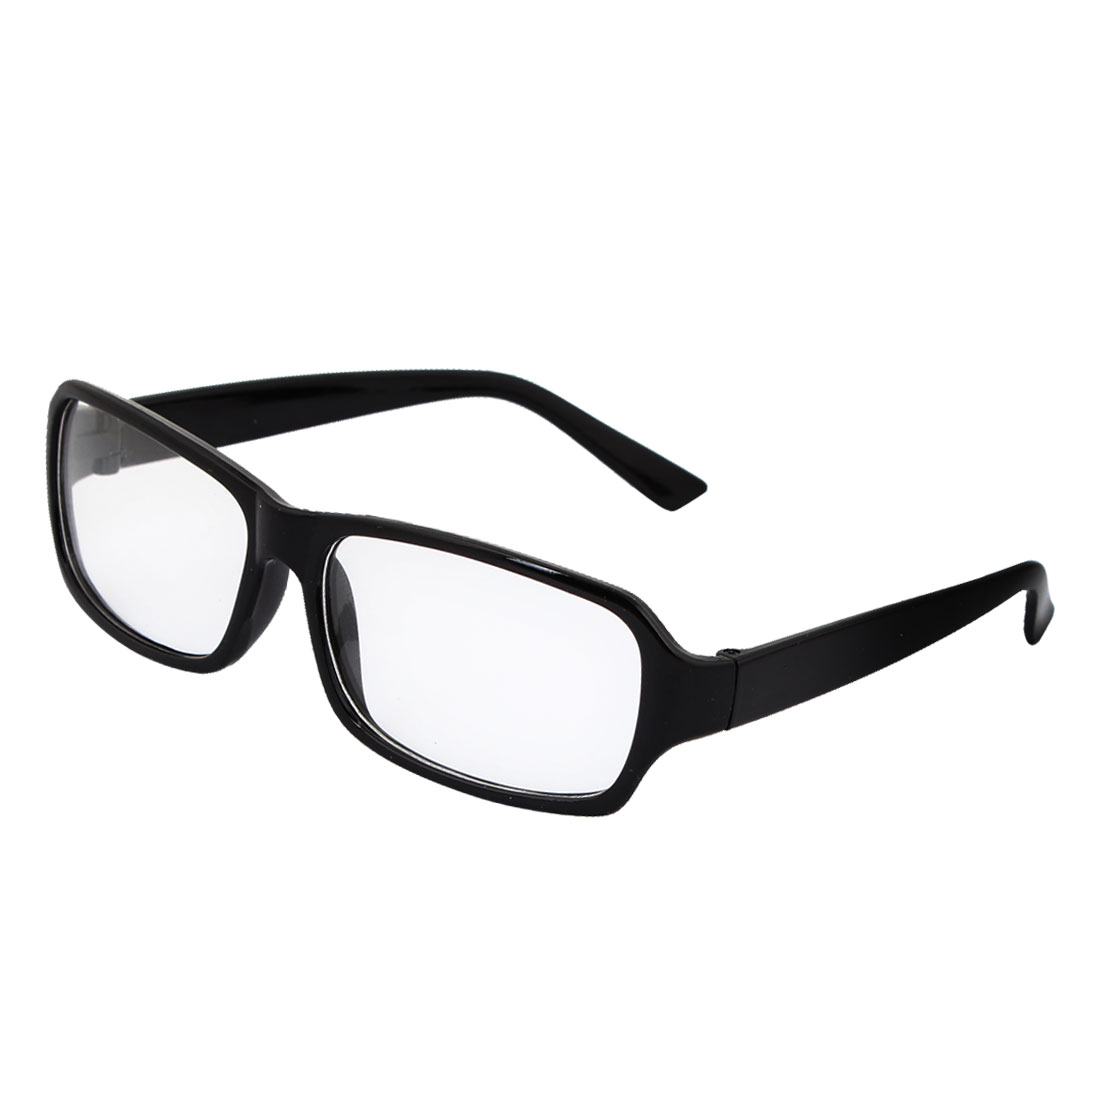 Black Plastic Full Frame Plain Glasses Spectacles for Women Men